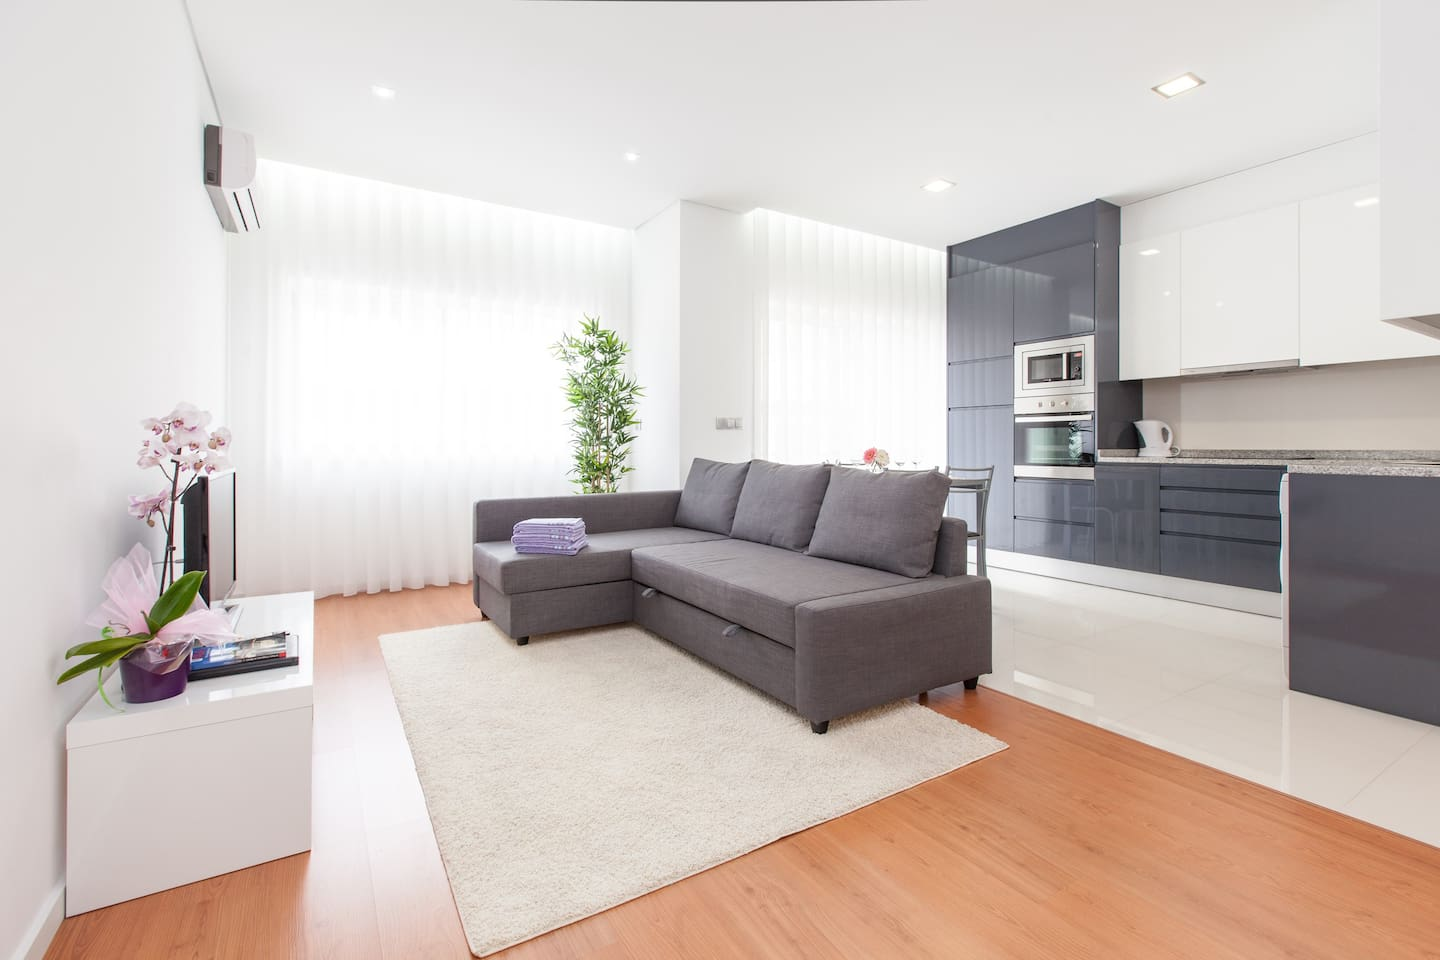 Living room with kitchenette.